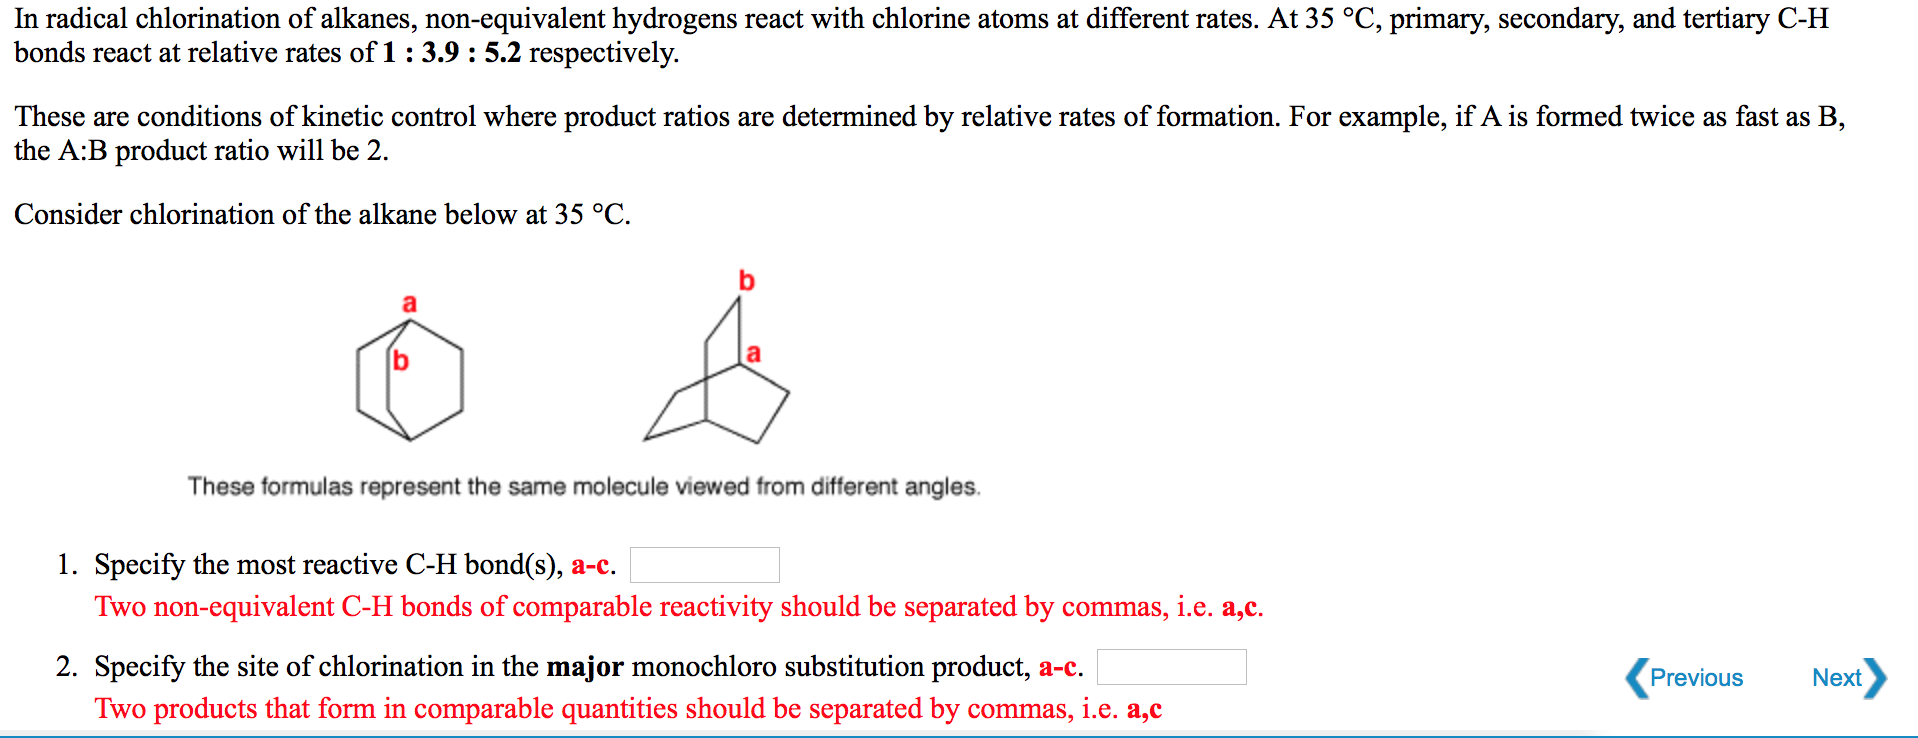 i need really help with these questions regarding